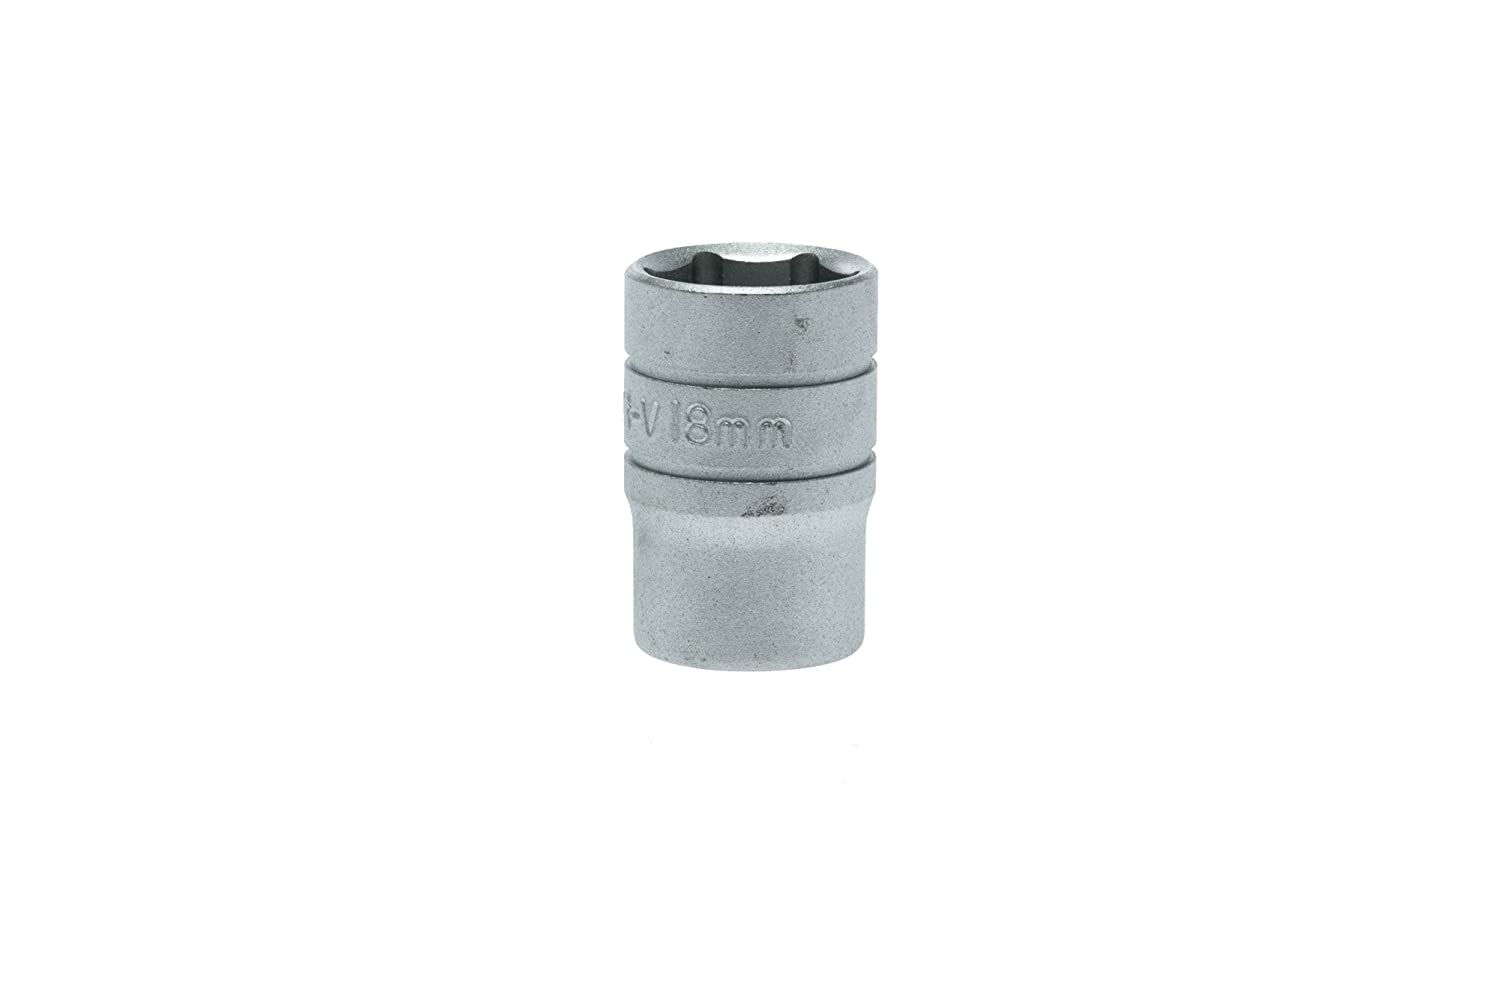 Teng M1205176 17mm 1/2-inch 6-Point Hex Socket Regular Drive TENM1205176